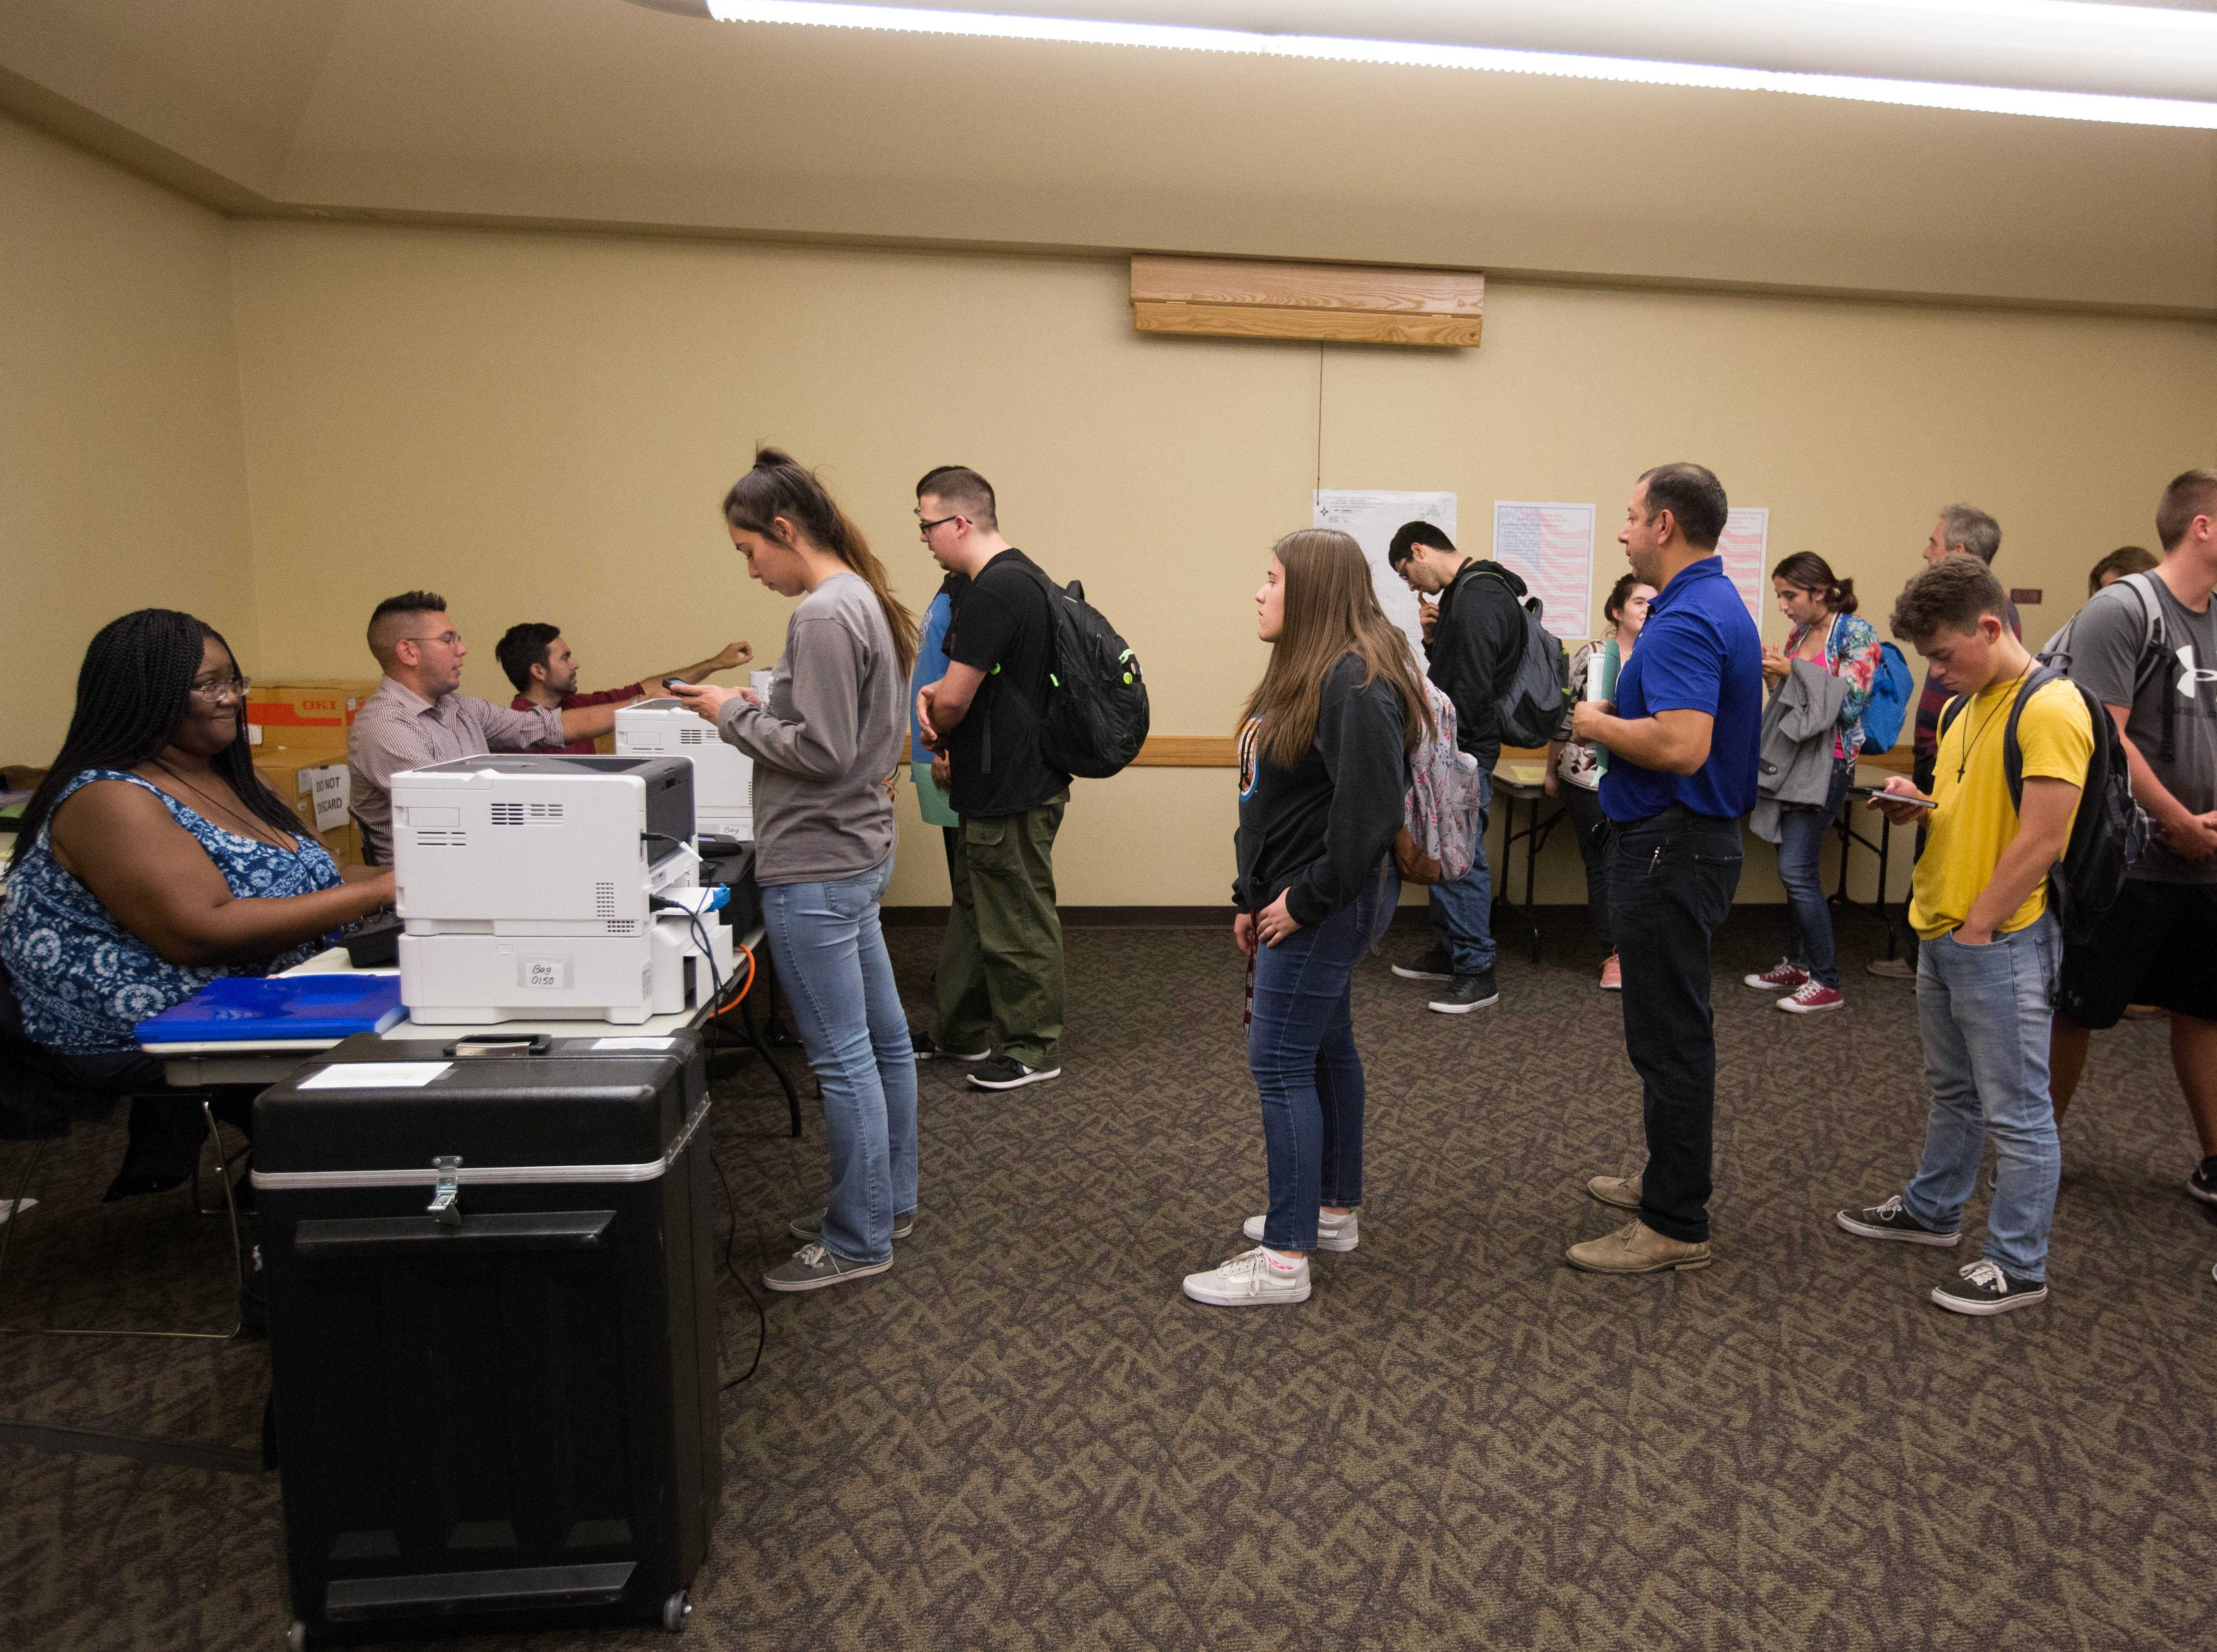 Voters line up at the polling station at Corbett Center at New Mexico State University, Tuesday November 6, 2018.